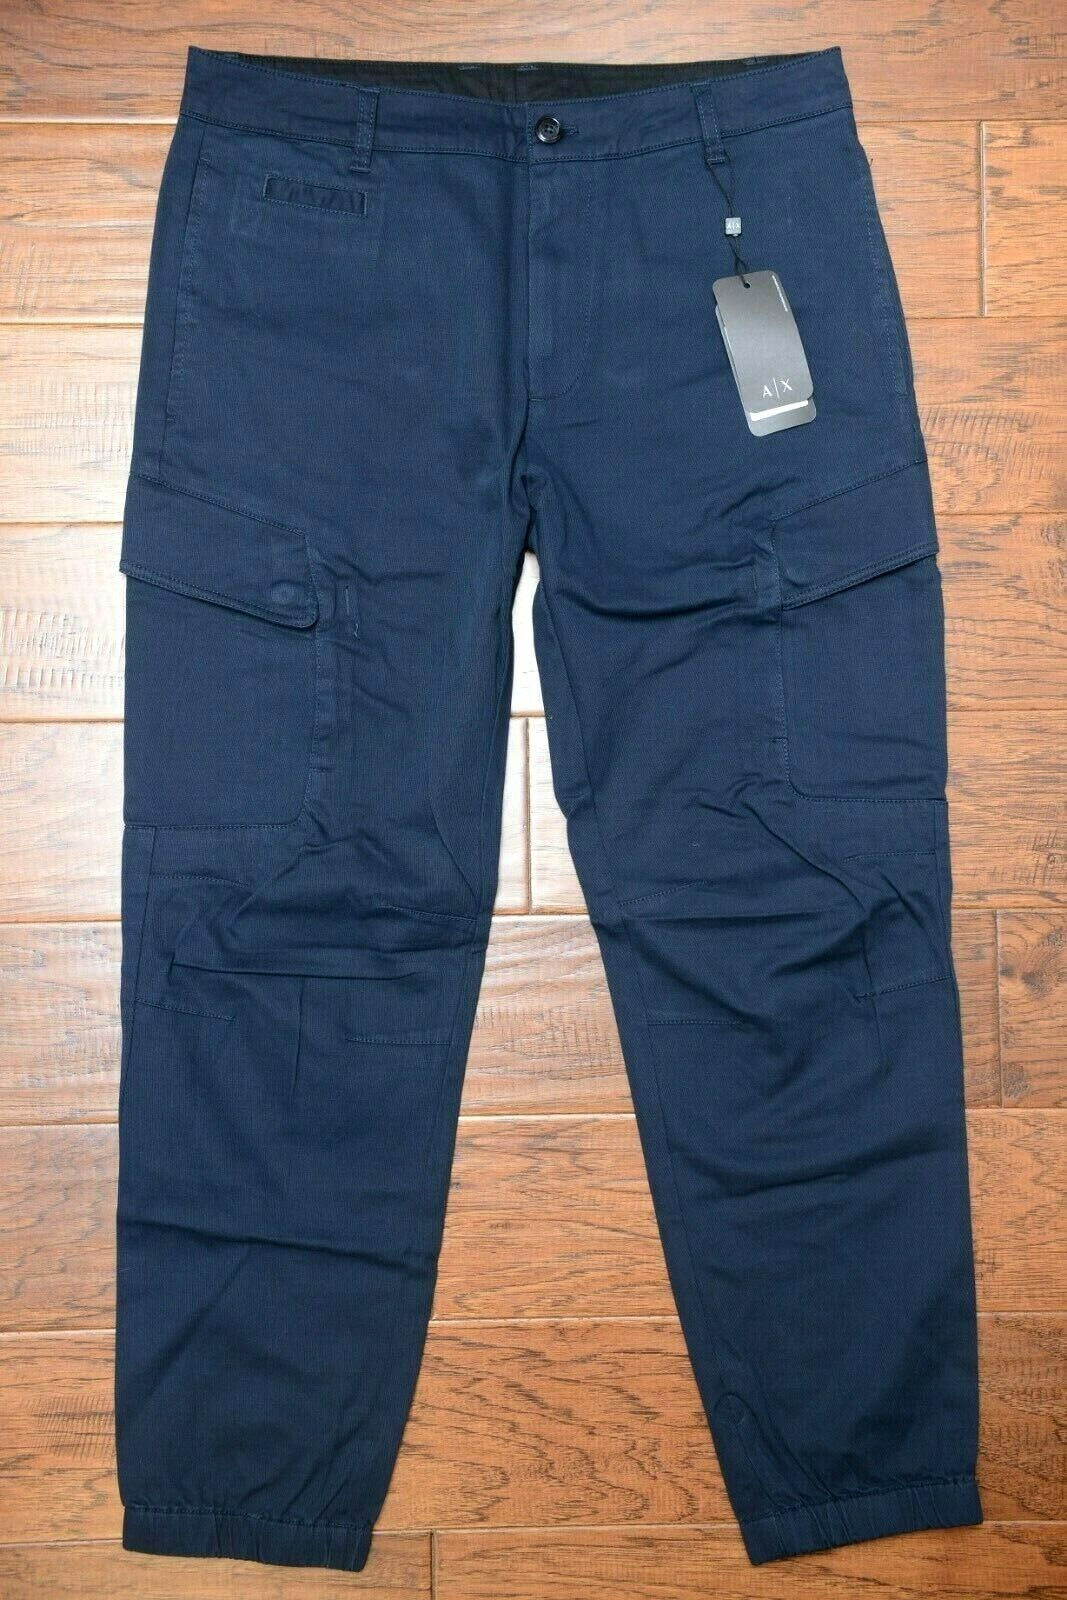 Armani Exchange A X Men Stretch Cotton Navy Casual Cargo Jogger Pants 32